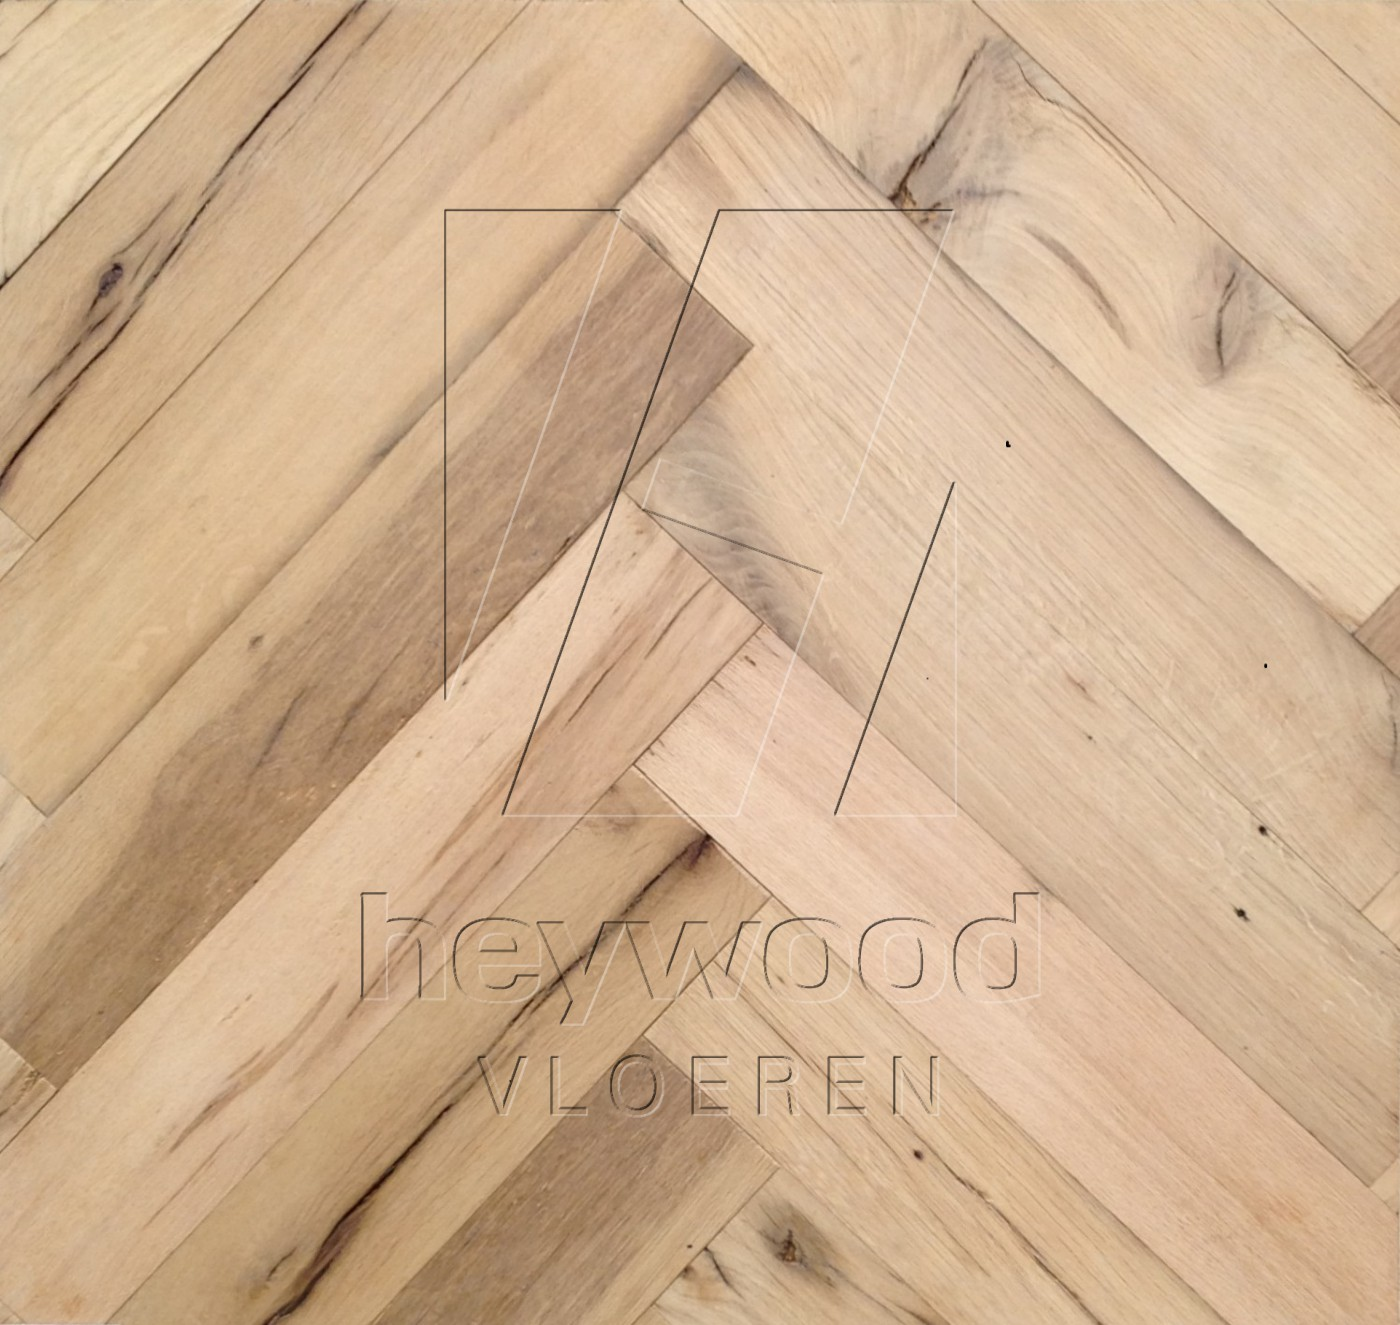 Stellenbosch (unoiled) Reclaimed Oak in Herringbone of Pattern & Panel Floors